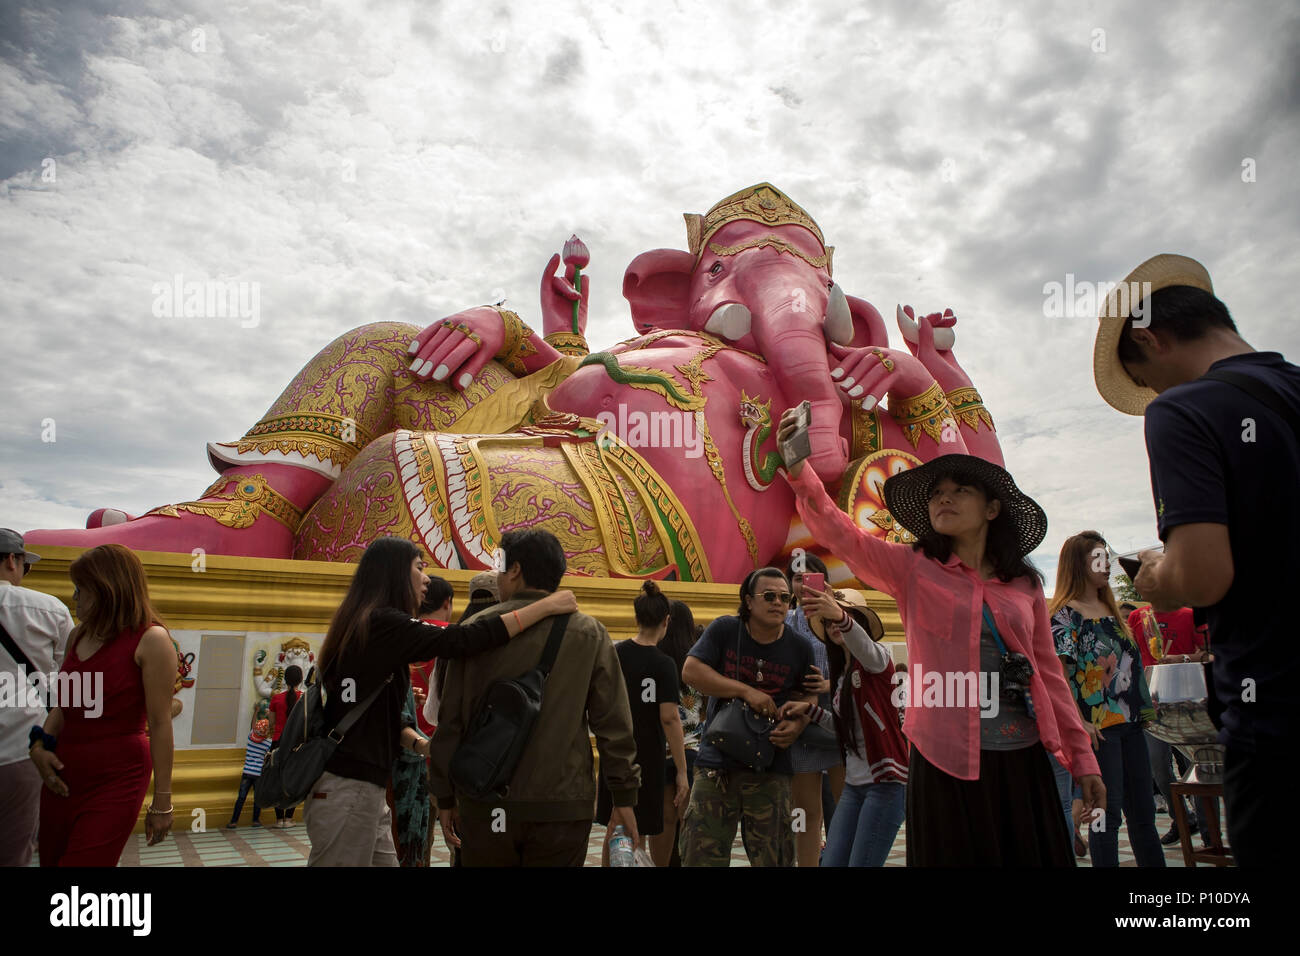 CHACHOENGSAO THAILAND - JUNE10,2018 : large number of tourist taking a photograph in front of pink ganesha statue at wat saman rattanaram most popular - Stock Image